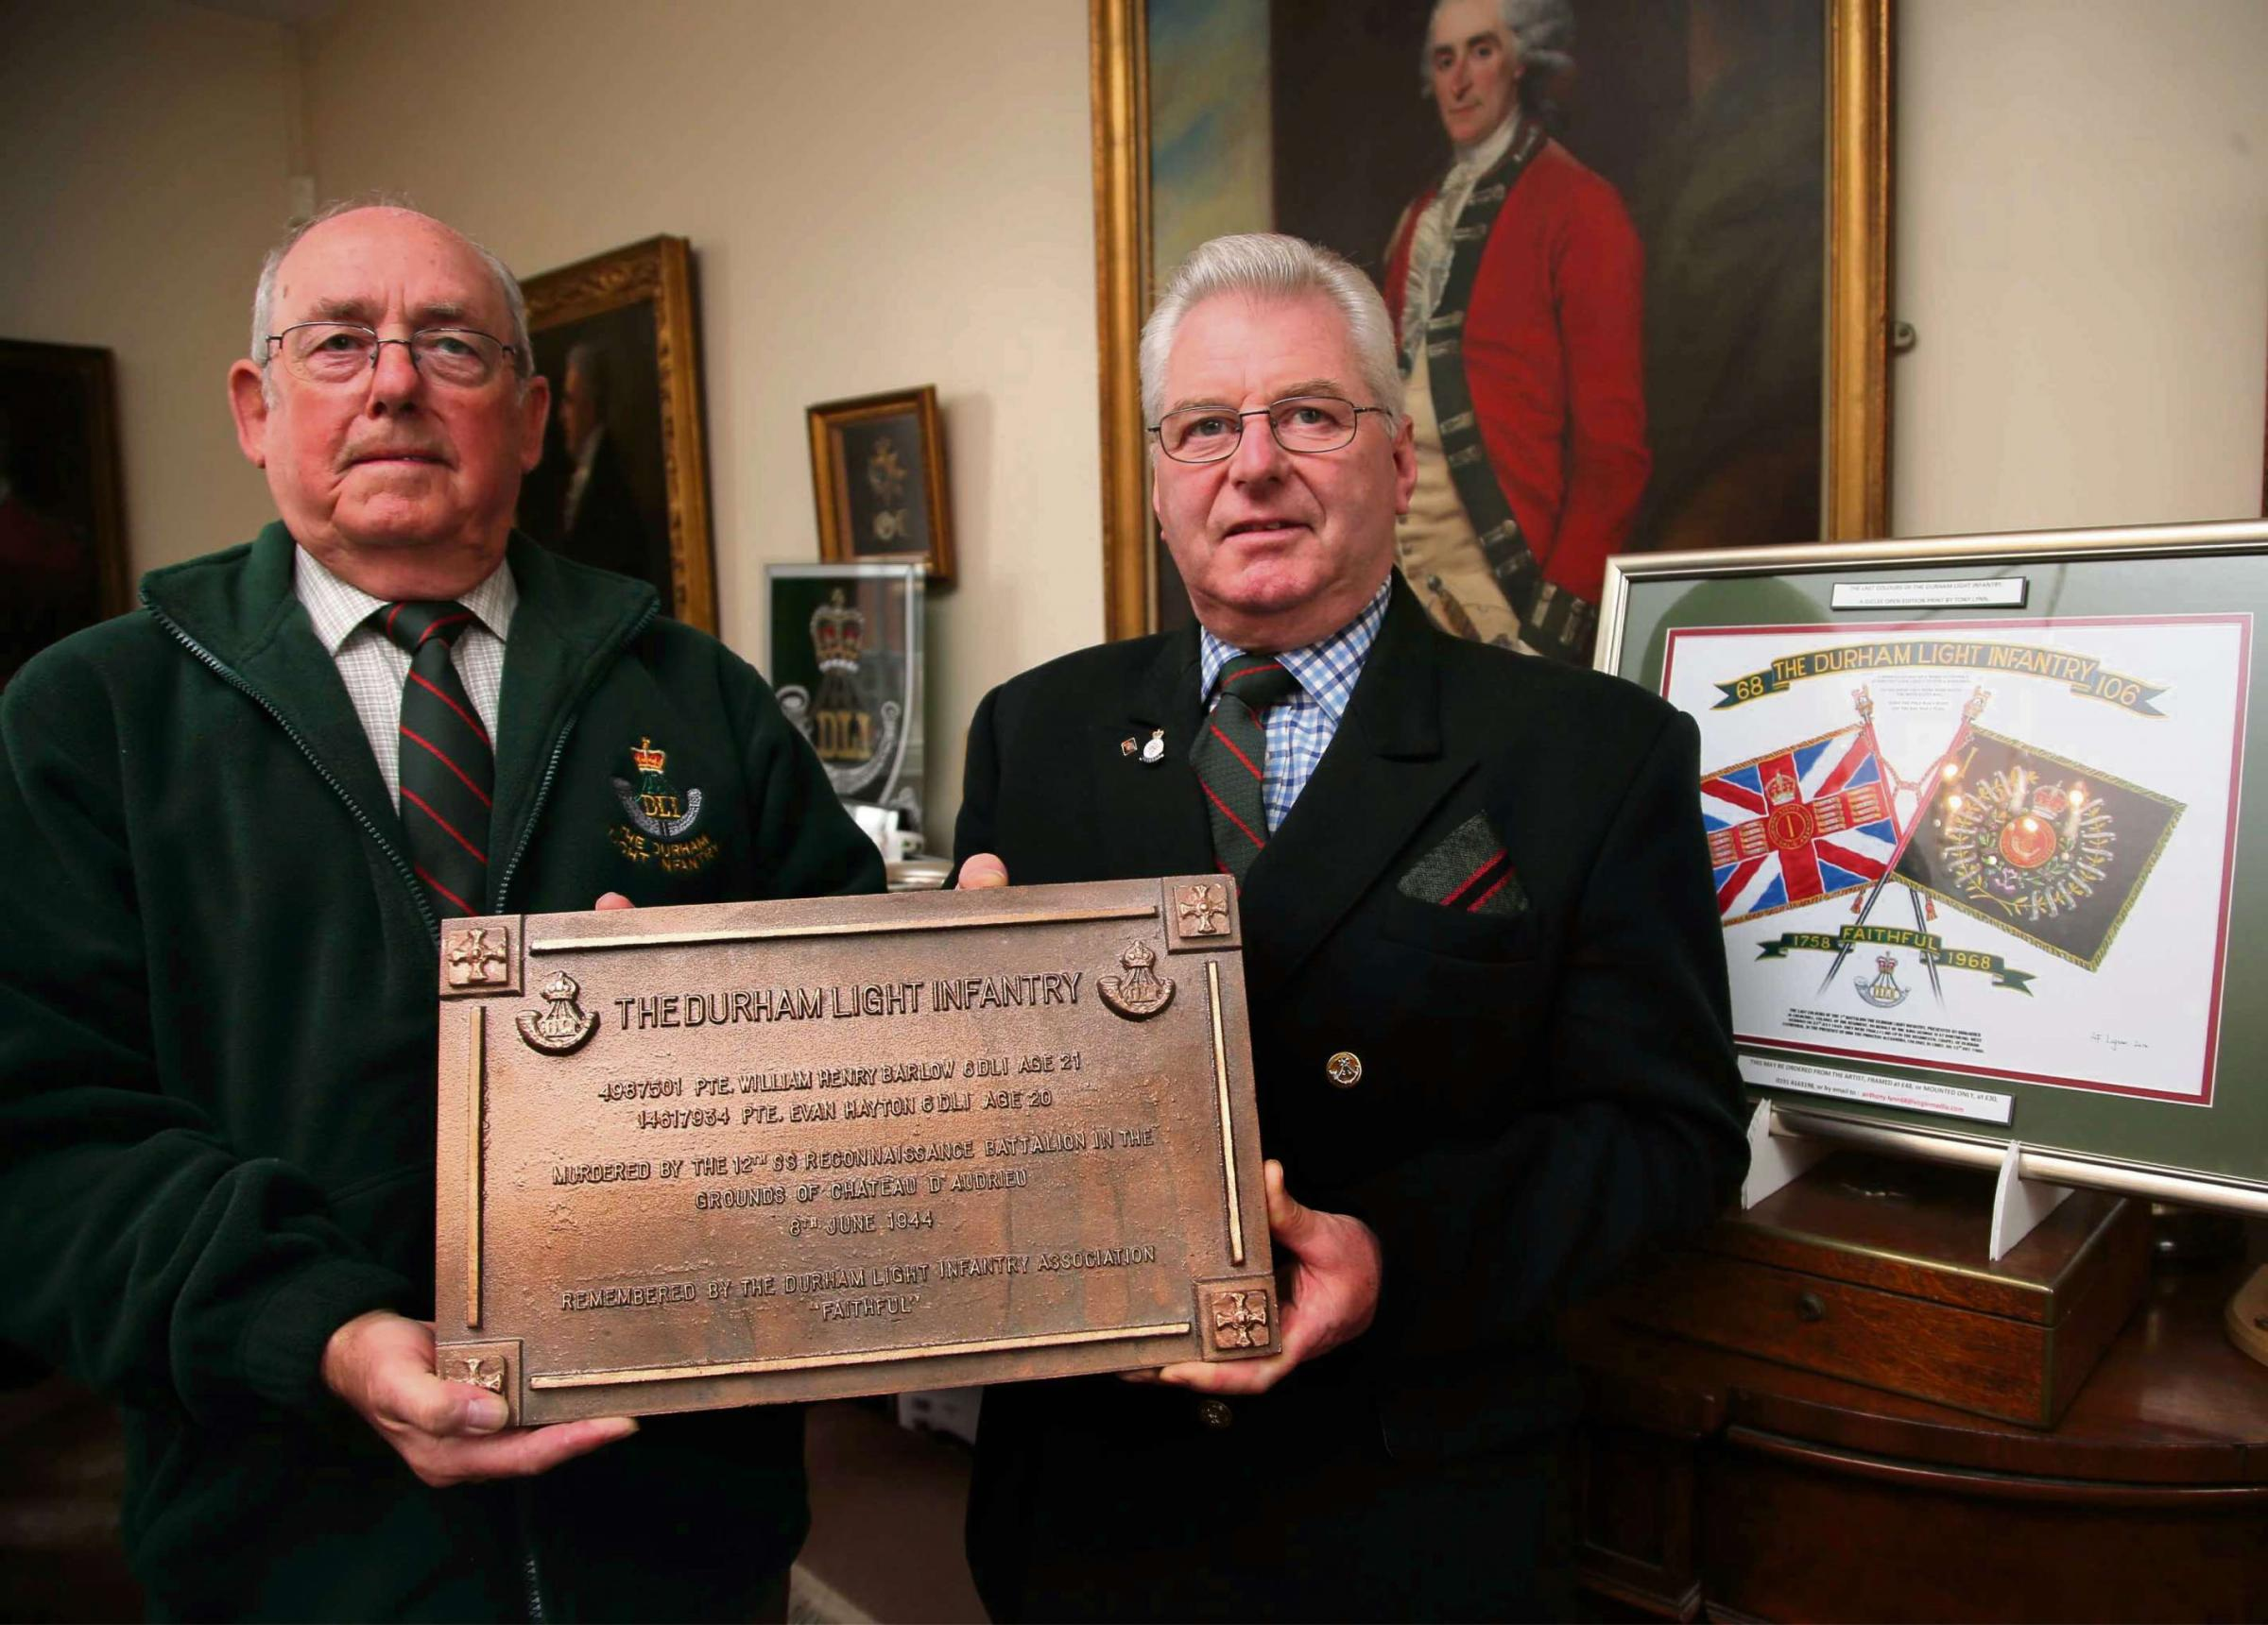 Murdered Durham Light Infantry soldiers honoured with new plaque